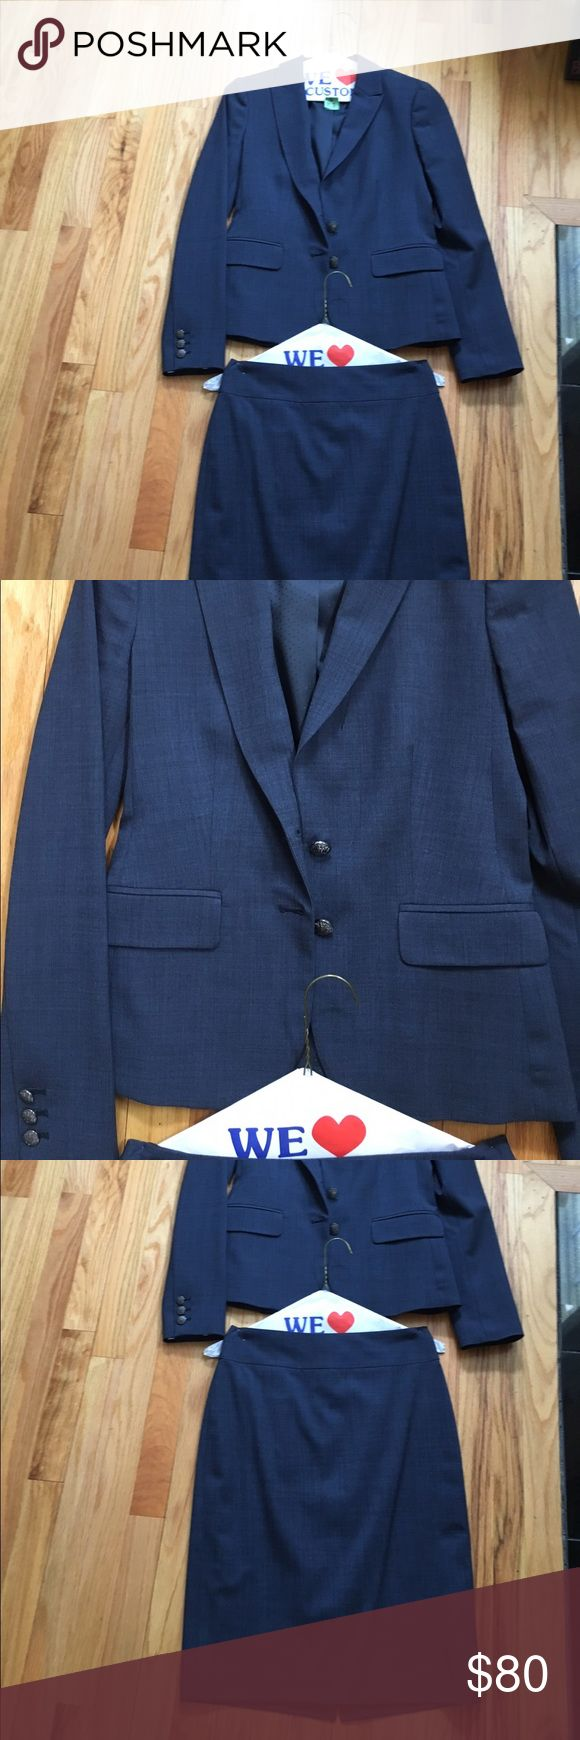 Banana republic suit Navy blue banana republic suit. Great condition. Skirt and blazer combo. Sold together Banana Republic Jackets & Coats Blazers